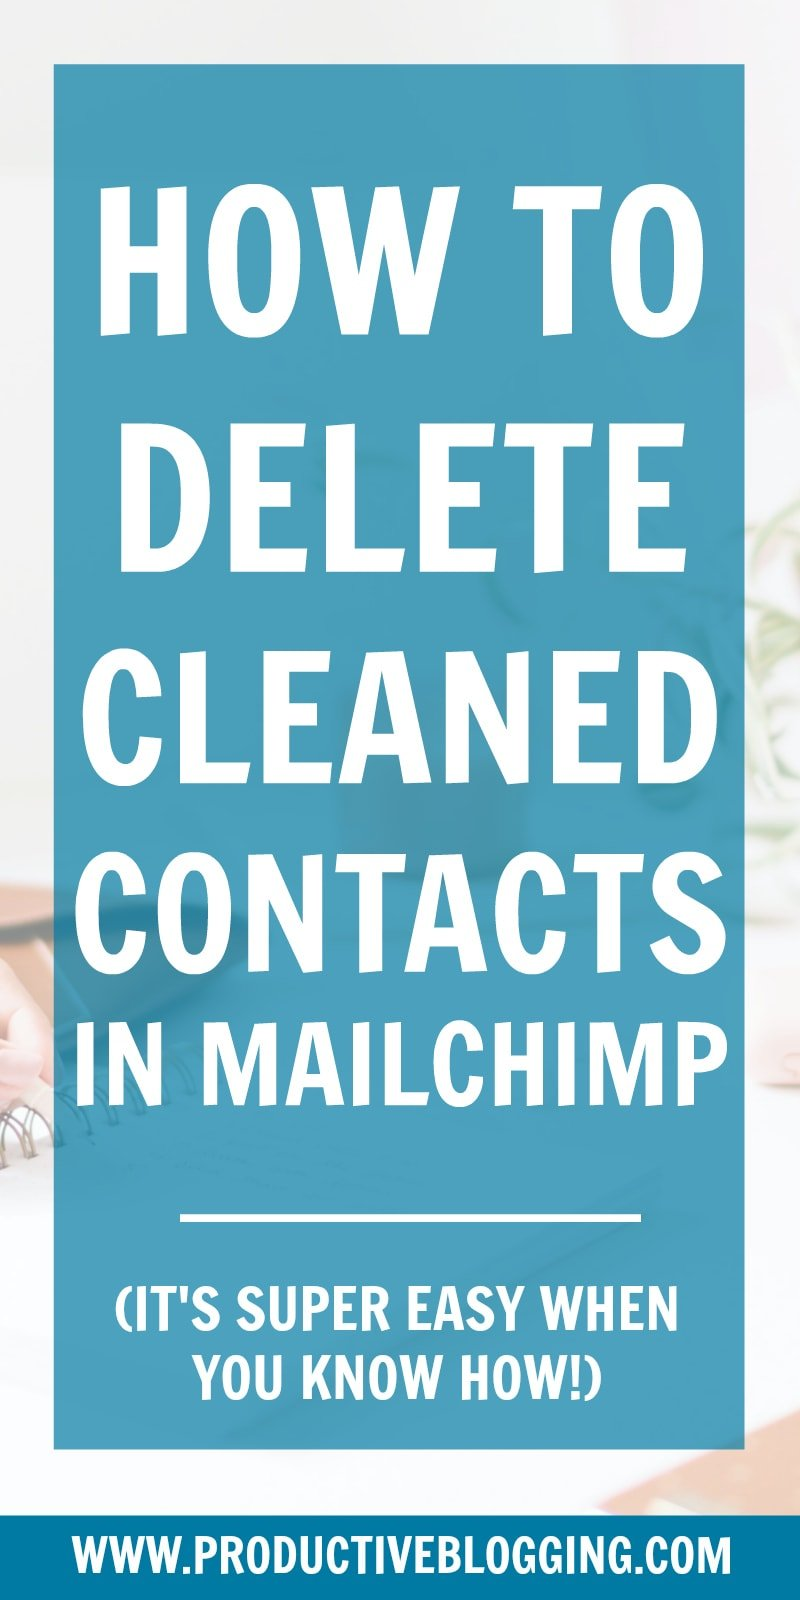 Wondering how to delete cleaned contacts in MailChimp? It's super easy. Here's how… #mailchimp #listcleaning #emailmarketingforbloggers #emailmarketing #emailmarketingcourse #emaillist #emaillistgrowth #growyouremaillist #emailmarketingtips #listbuilding #subscribers #mailchimp #convertkit #mailerlite #blogging #bloggers #bloggingtips #growyourblog #bloggrowth #productivity #productivitytips #productiveblogging #blogsmarter #blogsmarternotharder